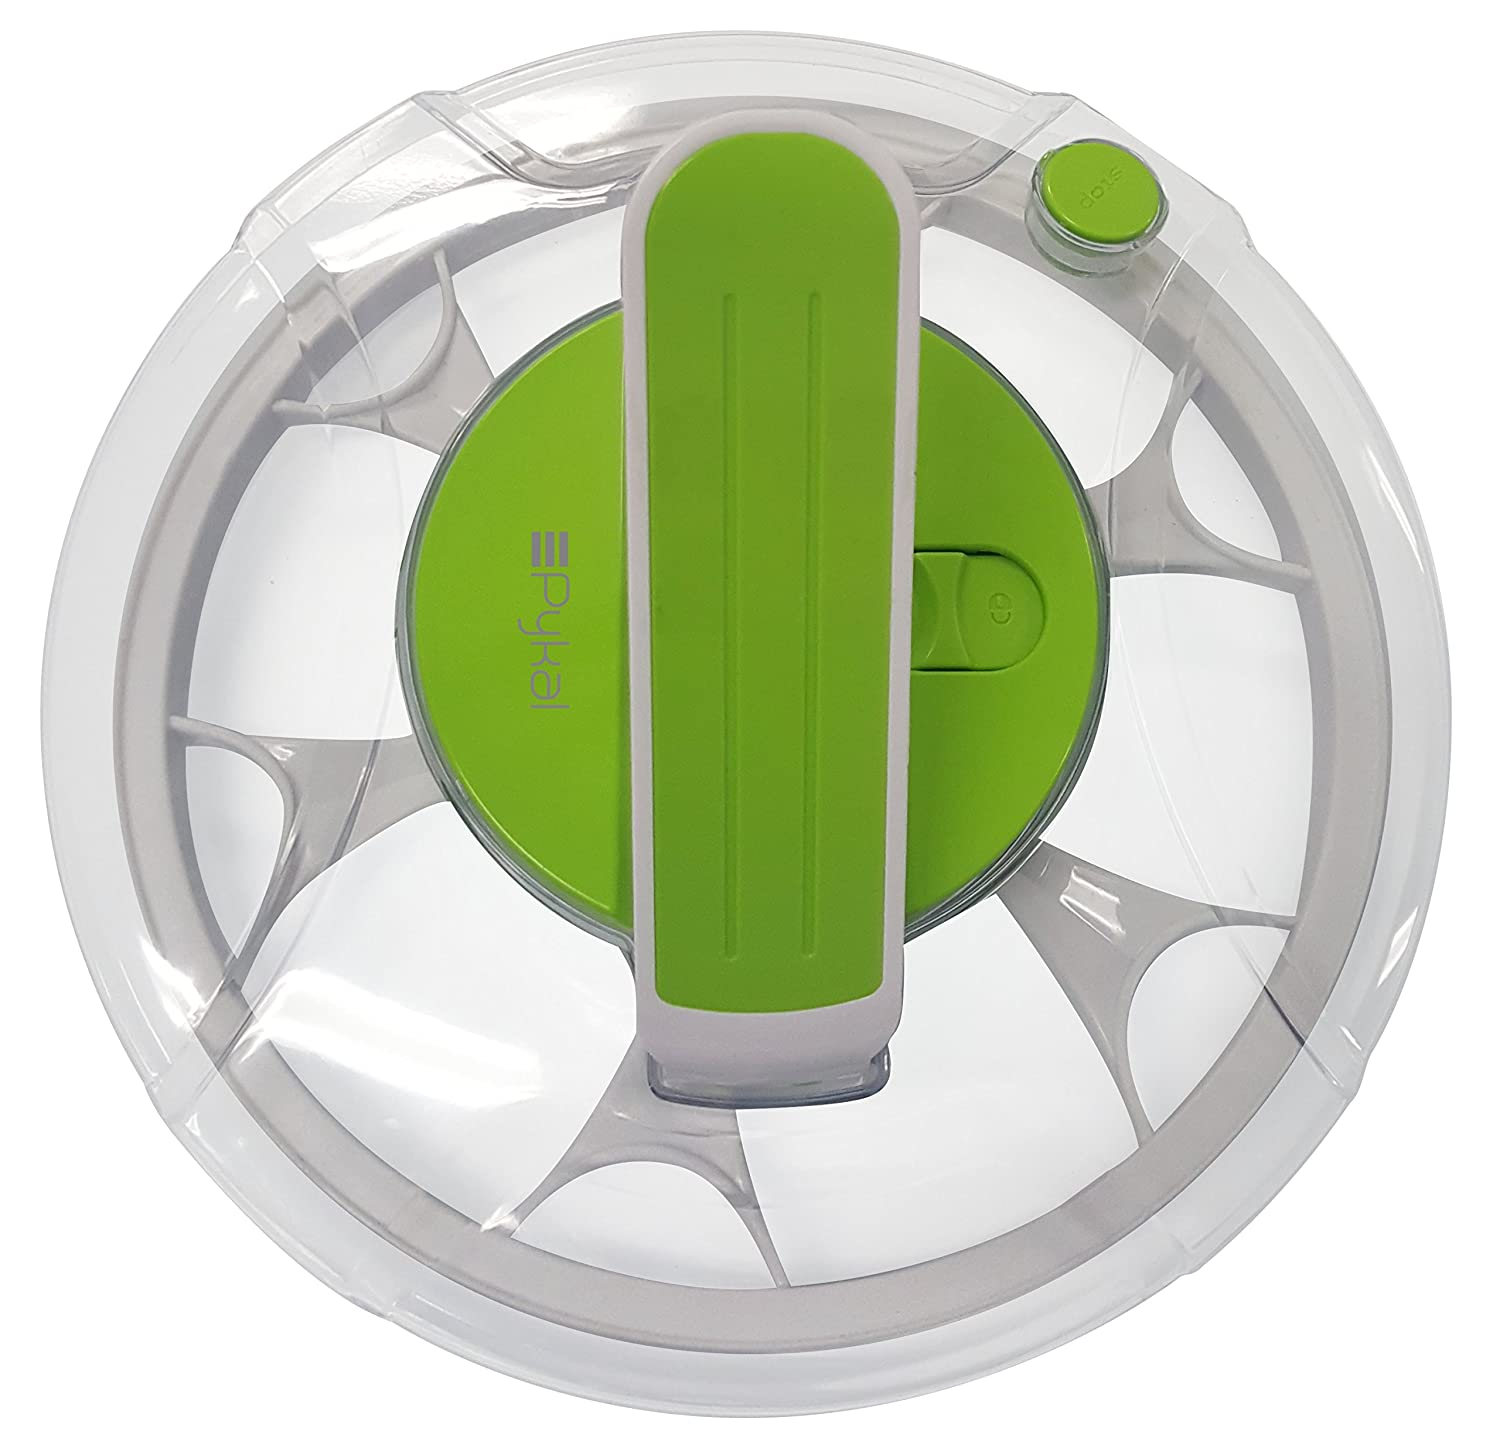 REPLACEMENT LID FOR PYKAL SALAD SPINNER; Model: KIT-SS-001 KIT-SS-001-LID